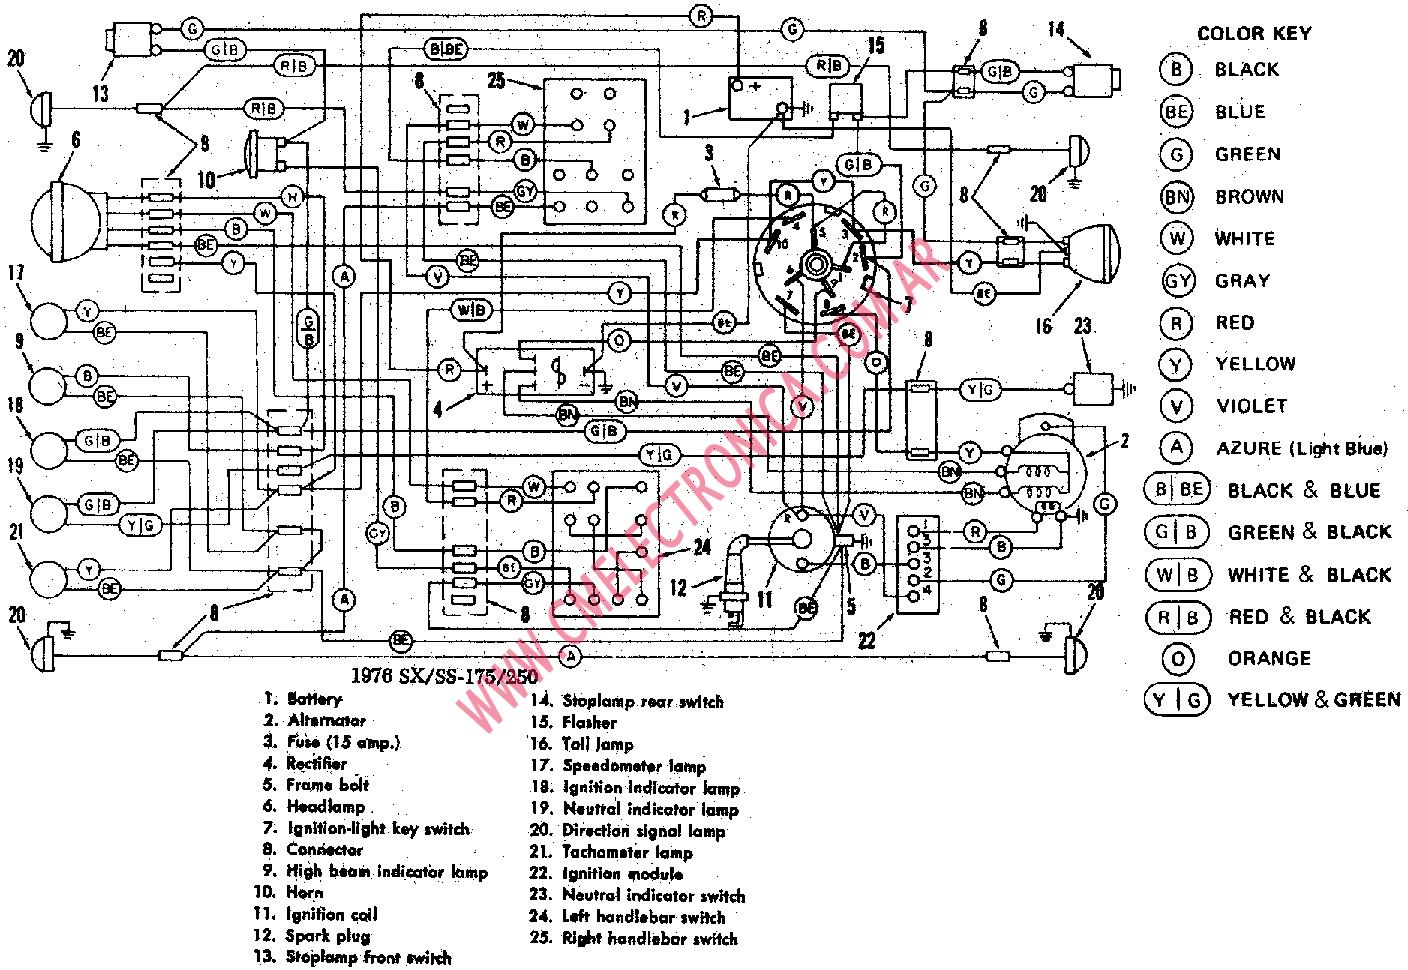 zr 500 motor diagram  zr  free engine image for user